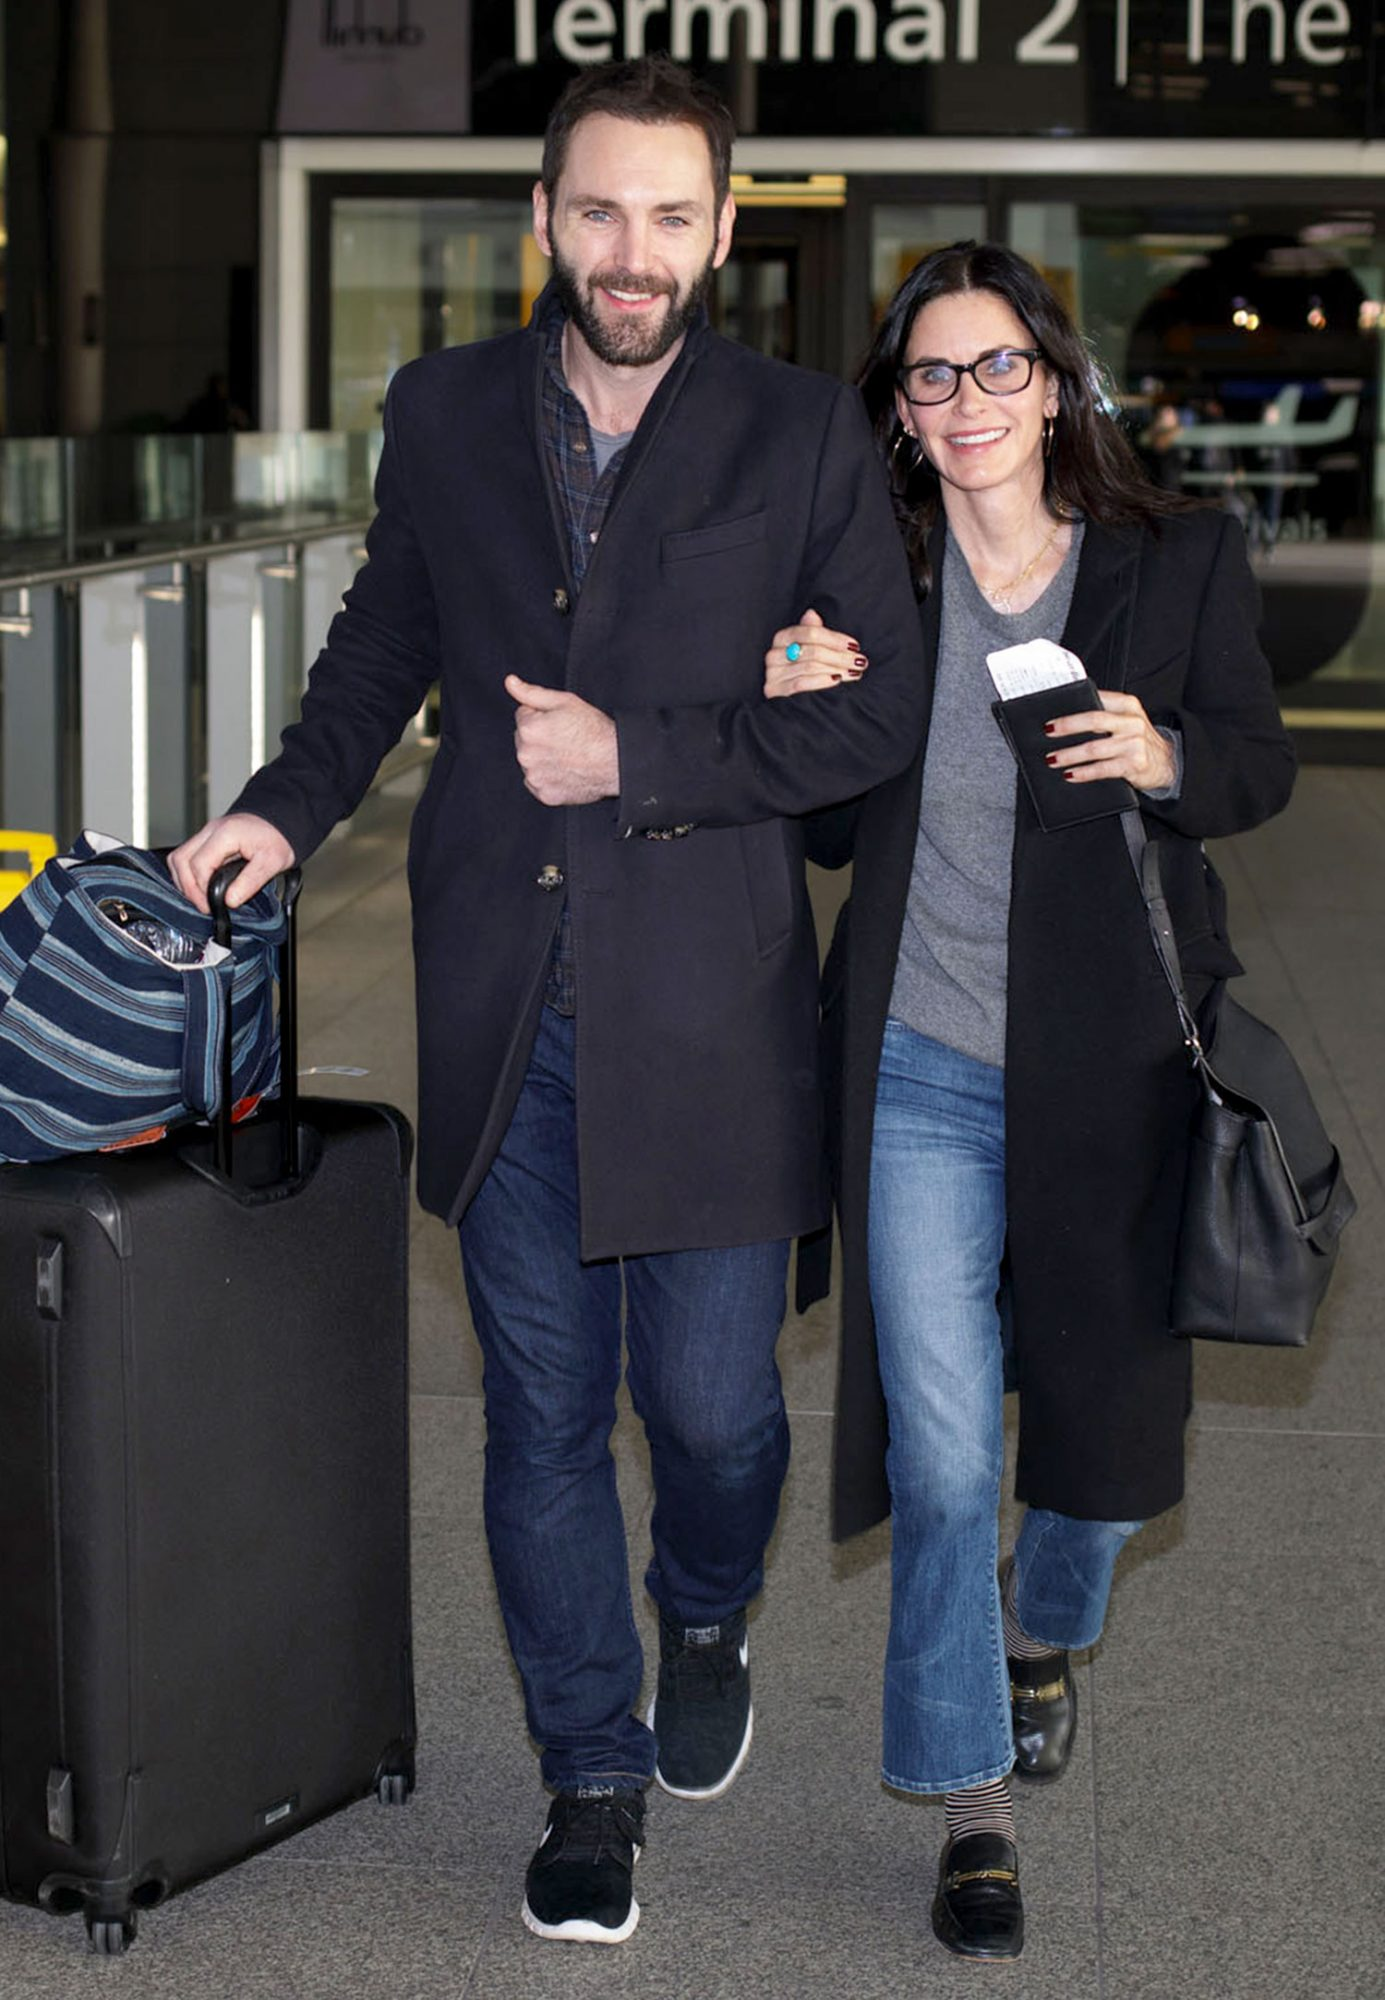 *EXCLUSIVE* Courteney Cox and Johnny McDaid are a cozy happy couple arriving at Heathrow Airport